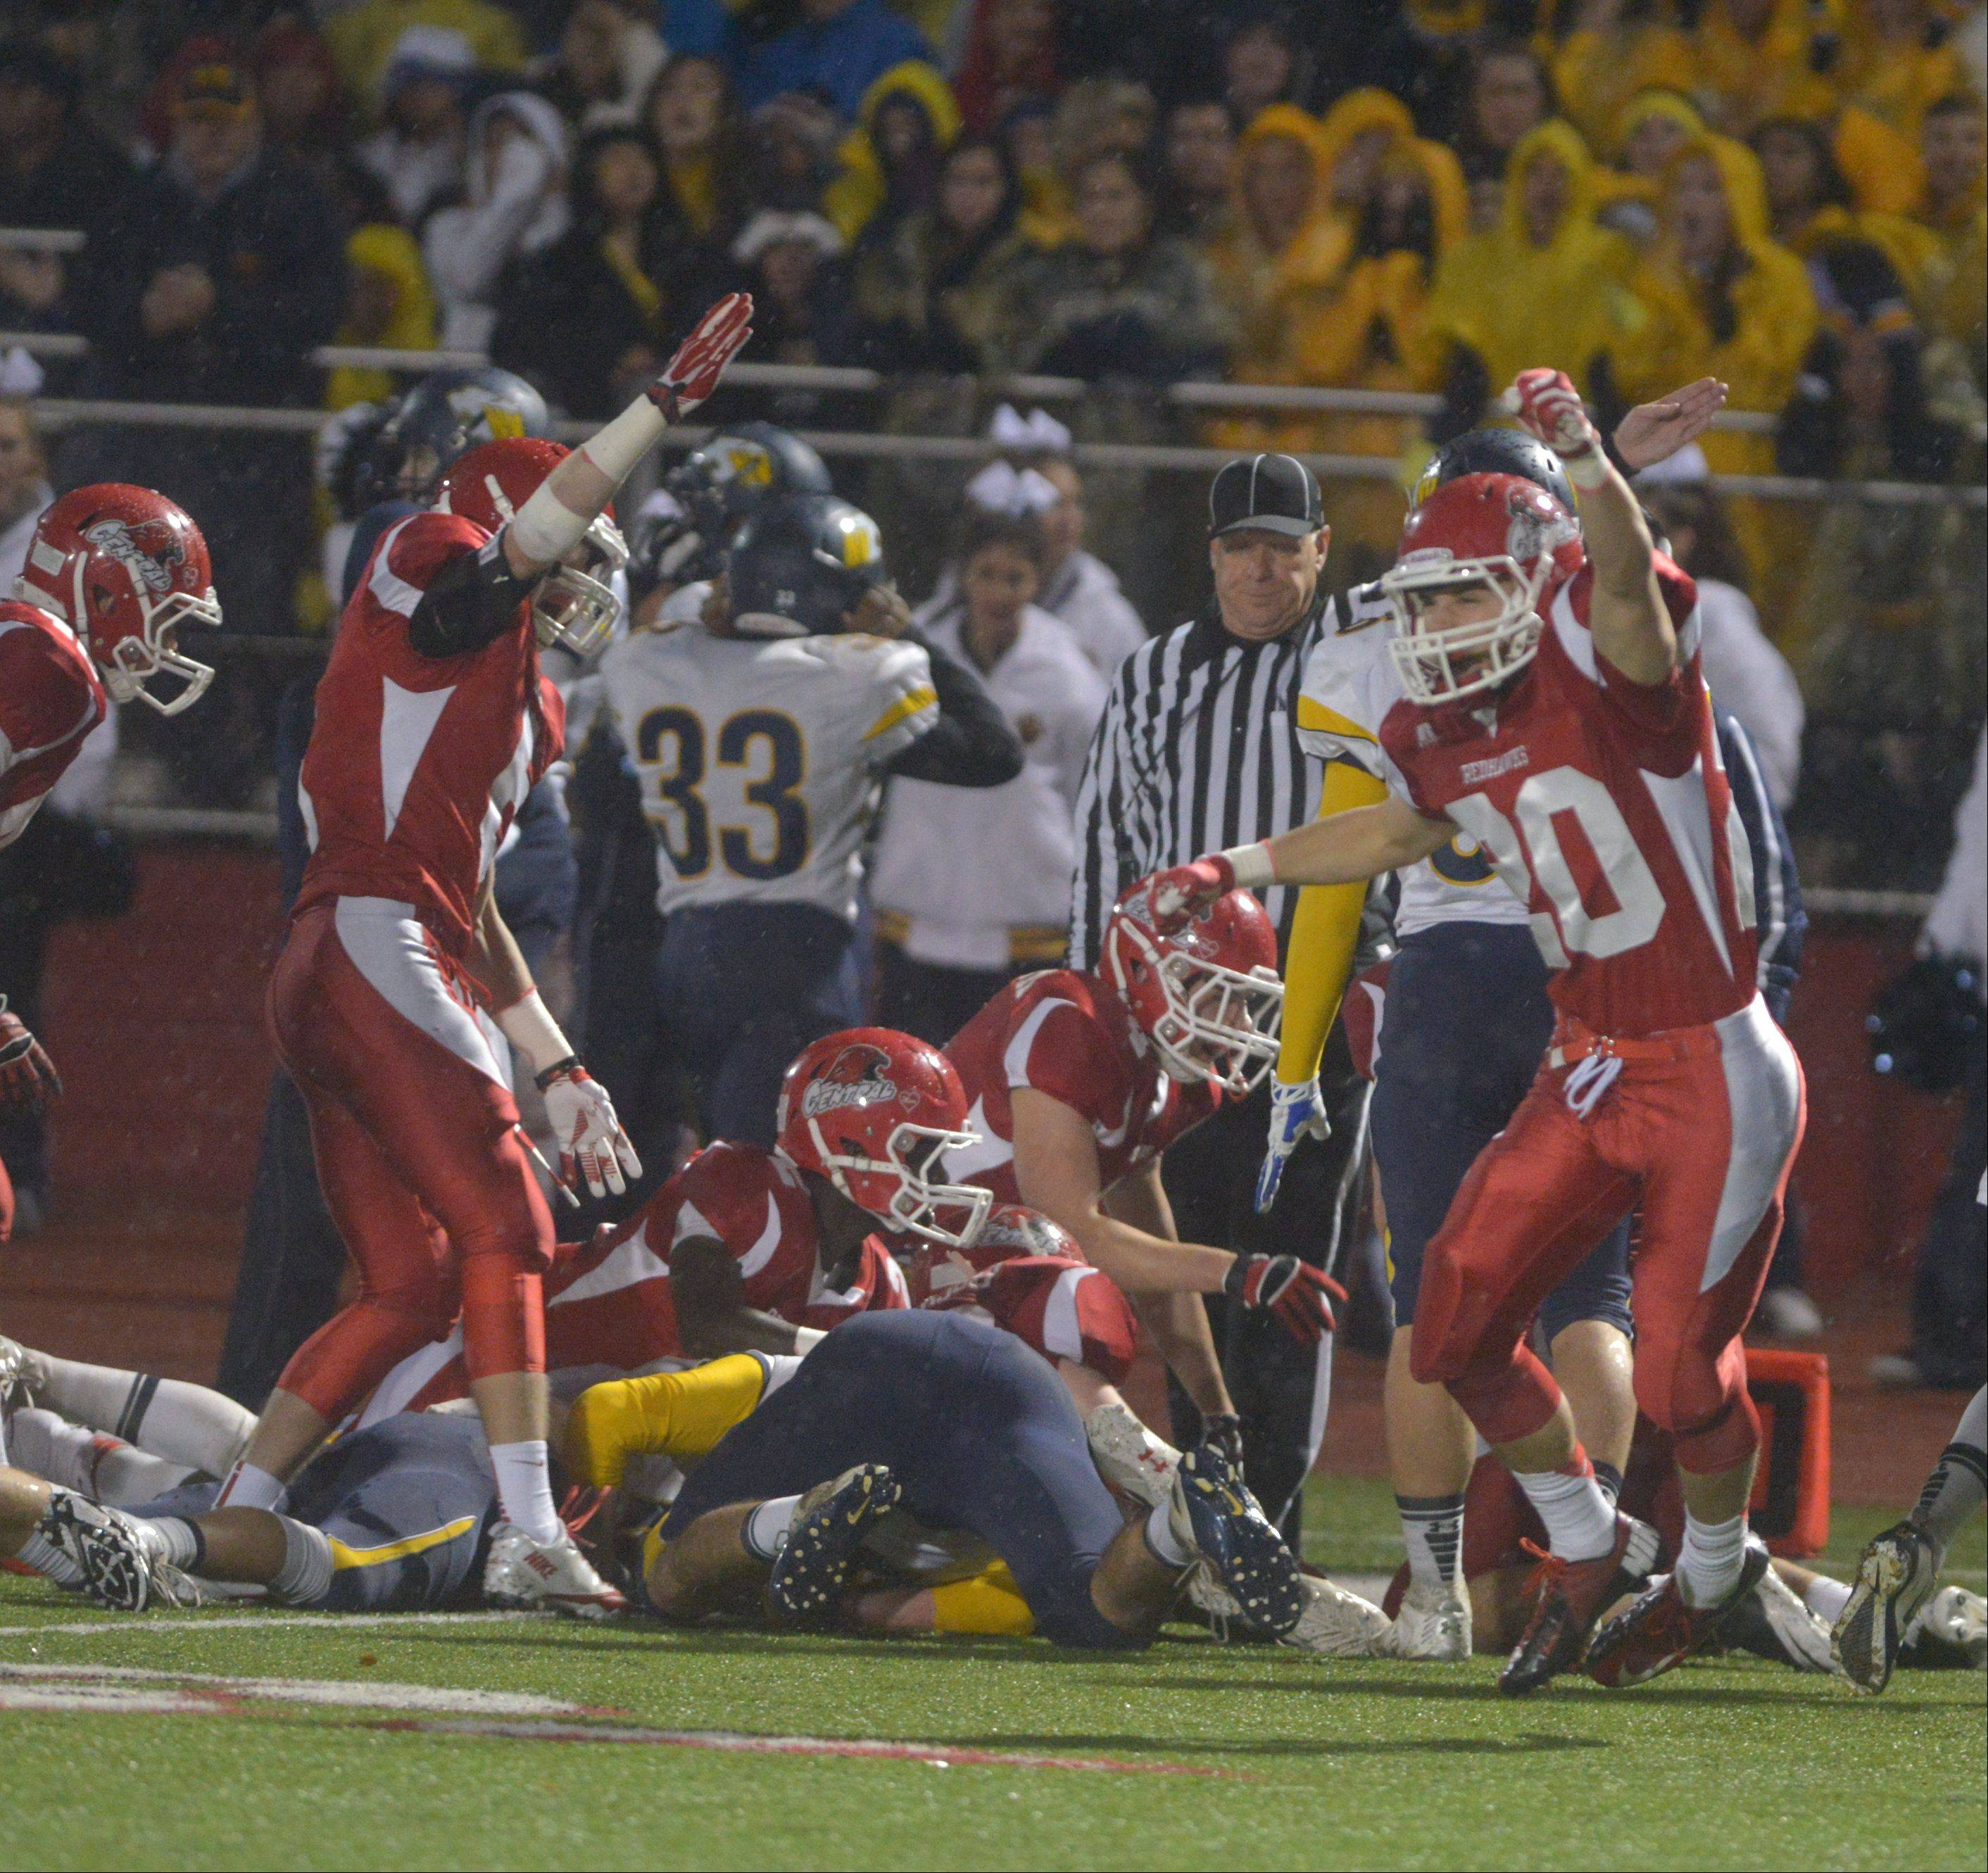 Playoffs -Quarterfinal- Photos from the Neuqua Valley at Naperville Central football game in Naperville on Saturday, Nov. 16.